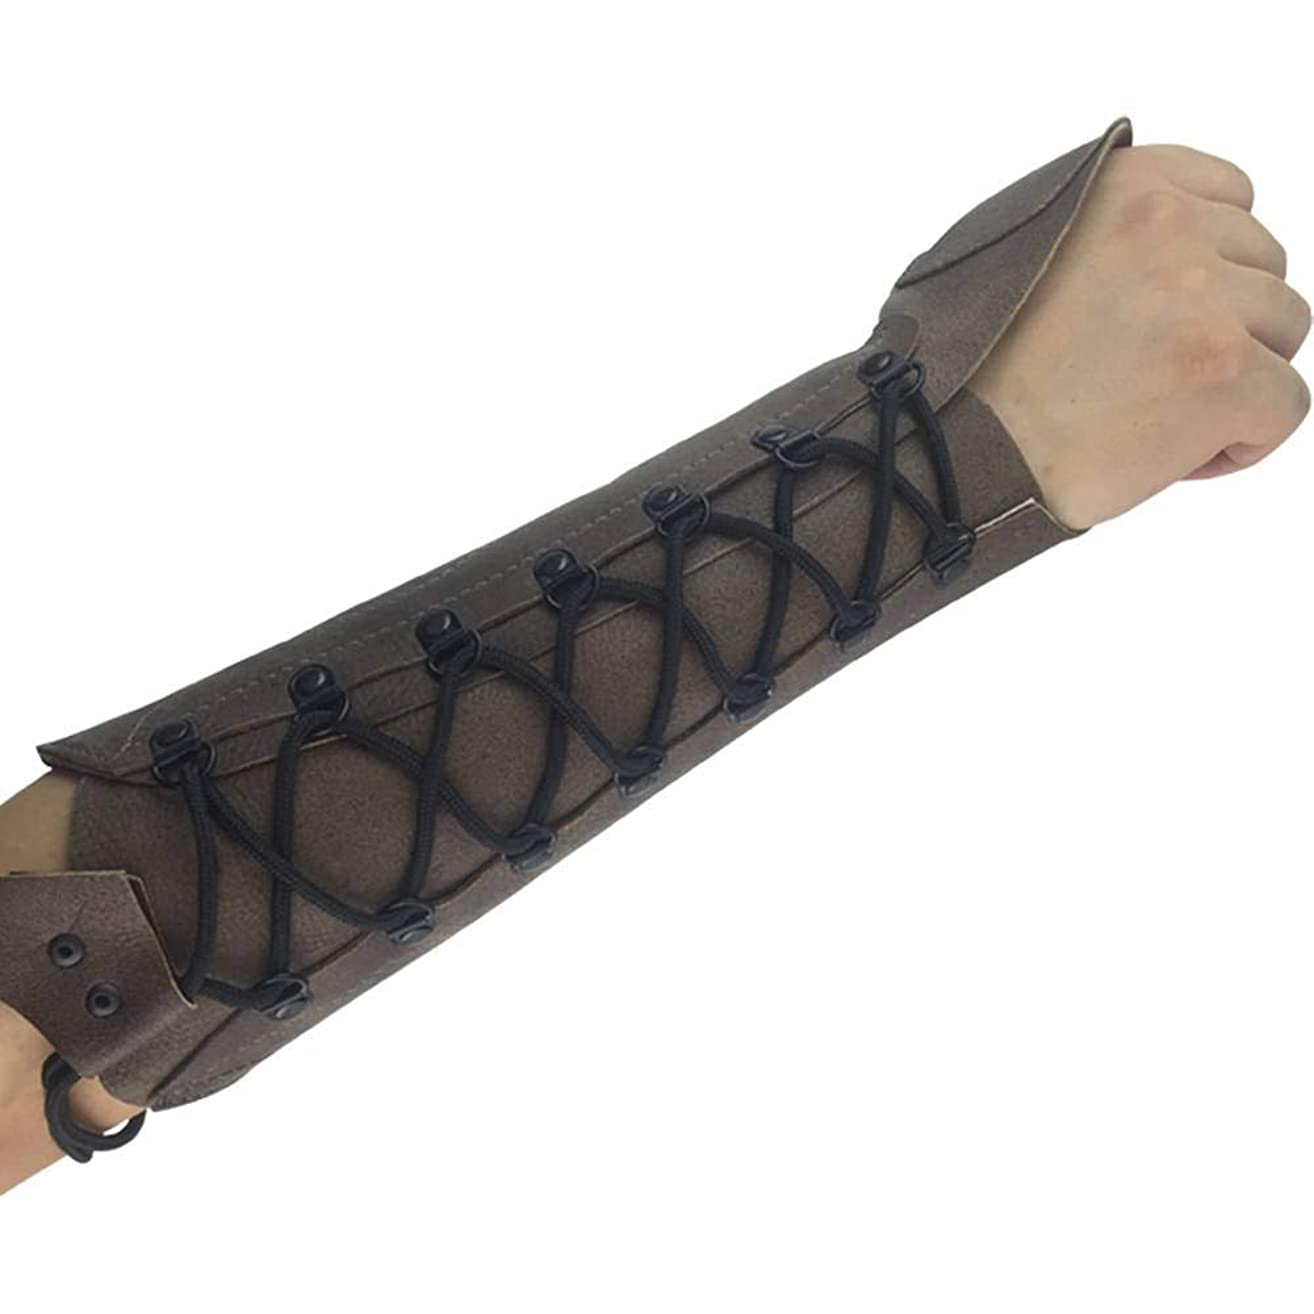 ArcheryMax Handmade Leather Arm Guard Bow Hand shooting Glove